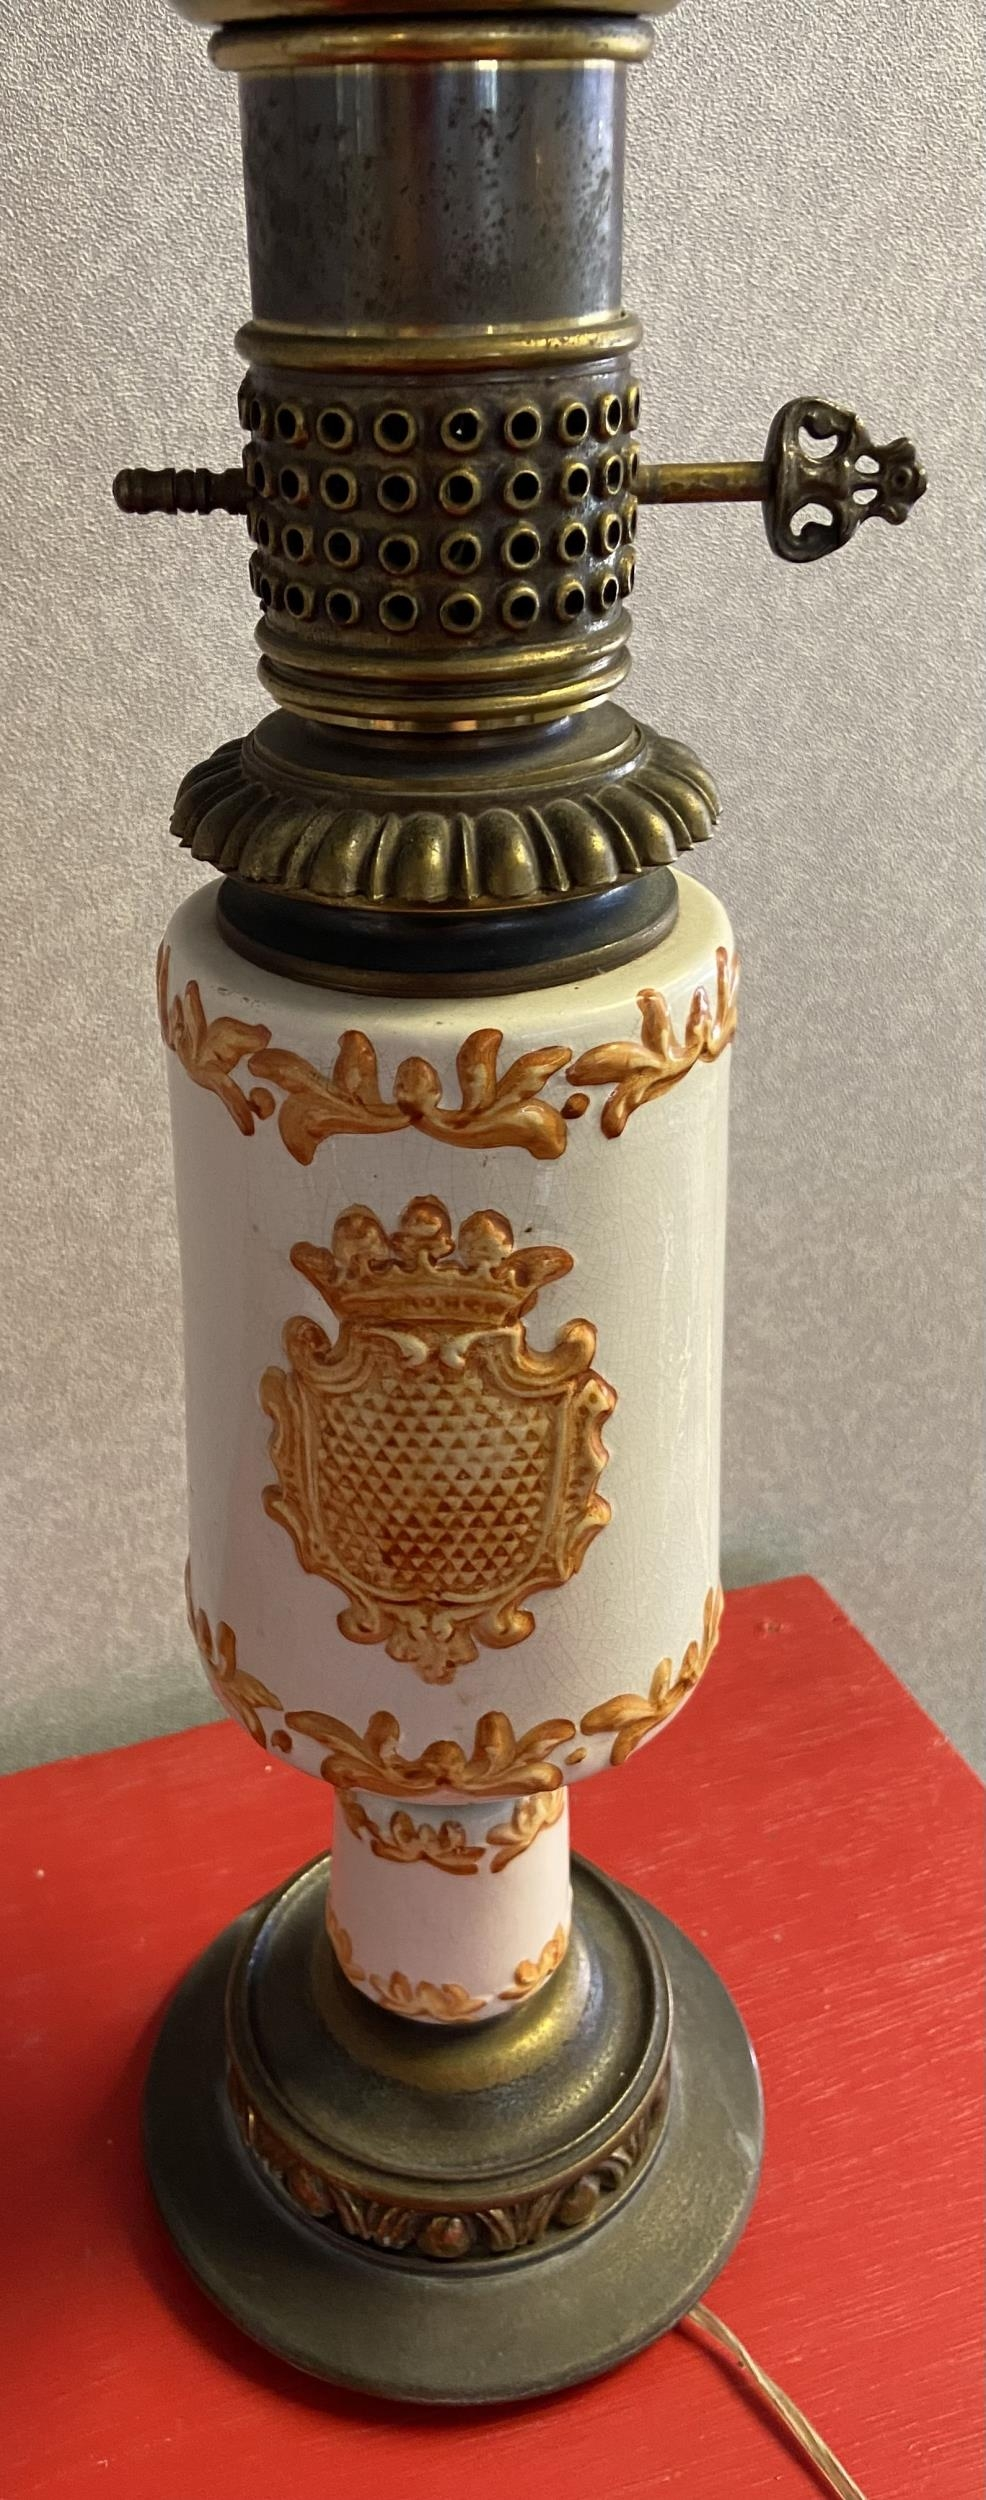 An Antique porcelain, metal and glass shade paraffin lamp converted to electric. [72cm in height] - Image 3 of 3